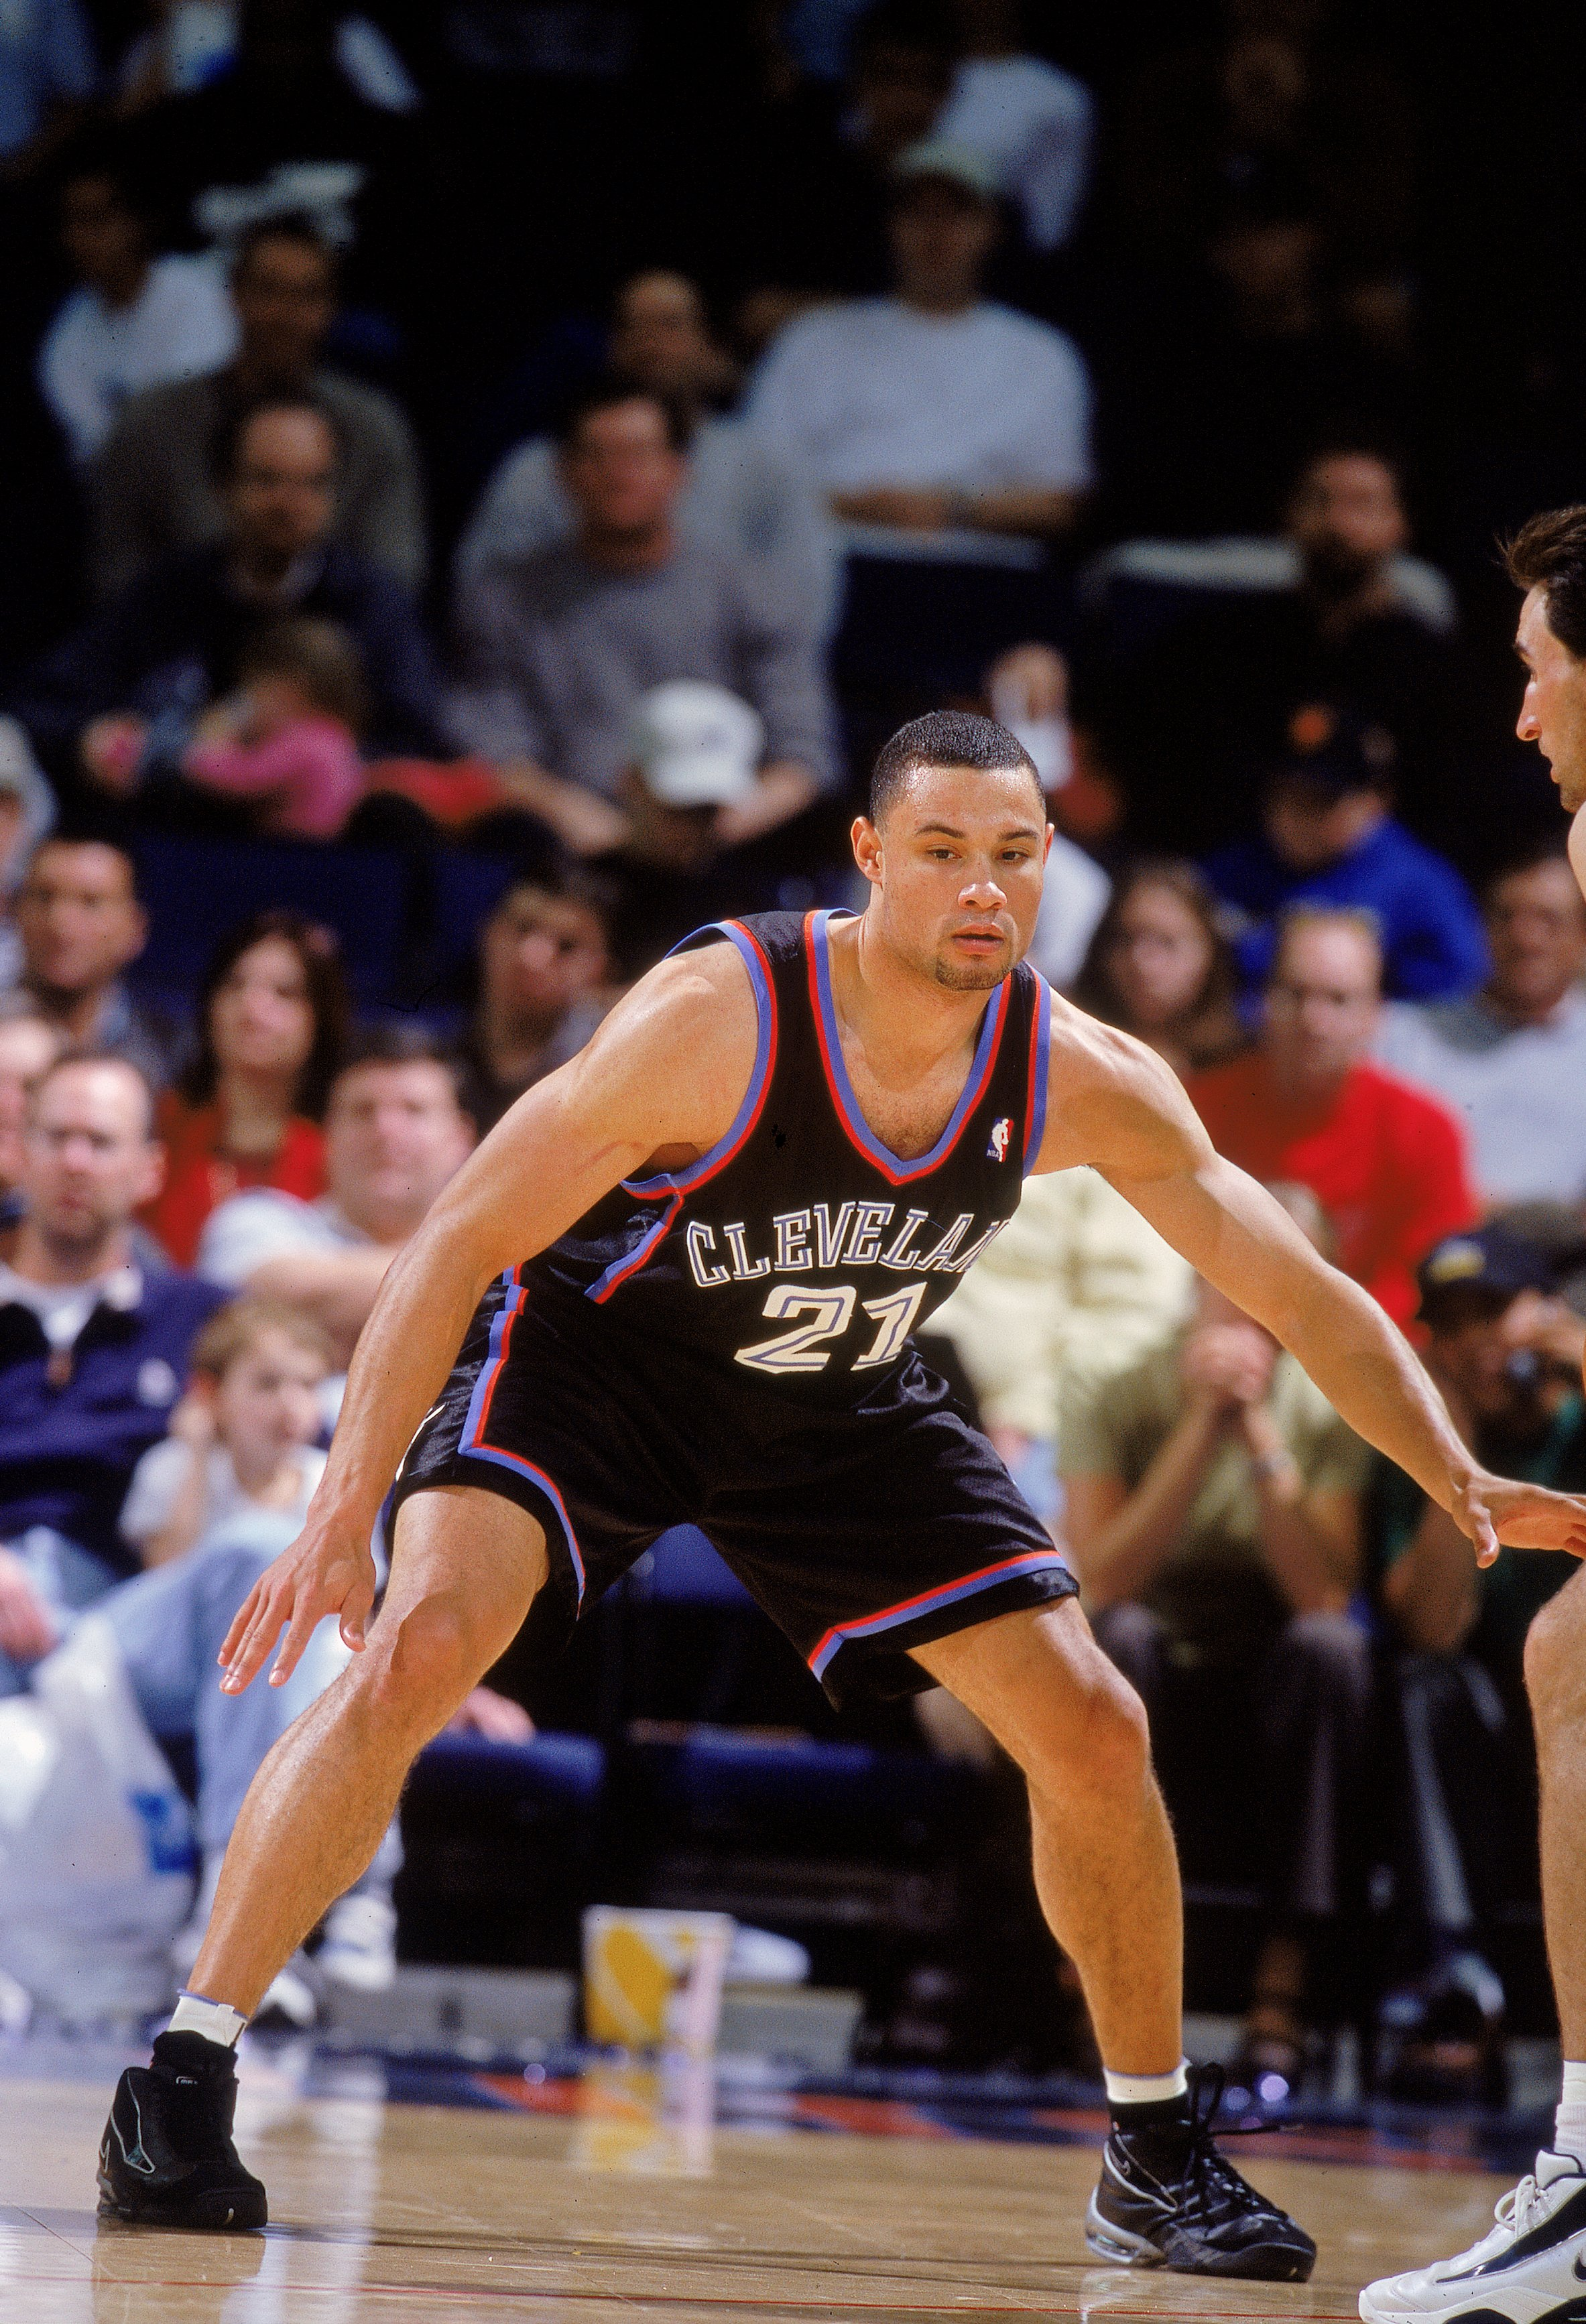 15 Jan 2001:   Trajan Langdon #21 of the Cleveland Cavaliers guards his player during the game against the Golden State Warriors at the Arena in Oakland in Oakland, California. The Cavaliers defeated the Warriors 107-101.   NOTE TO USER: It is expressly u